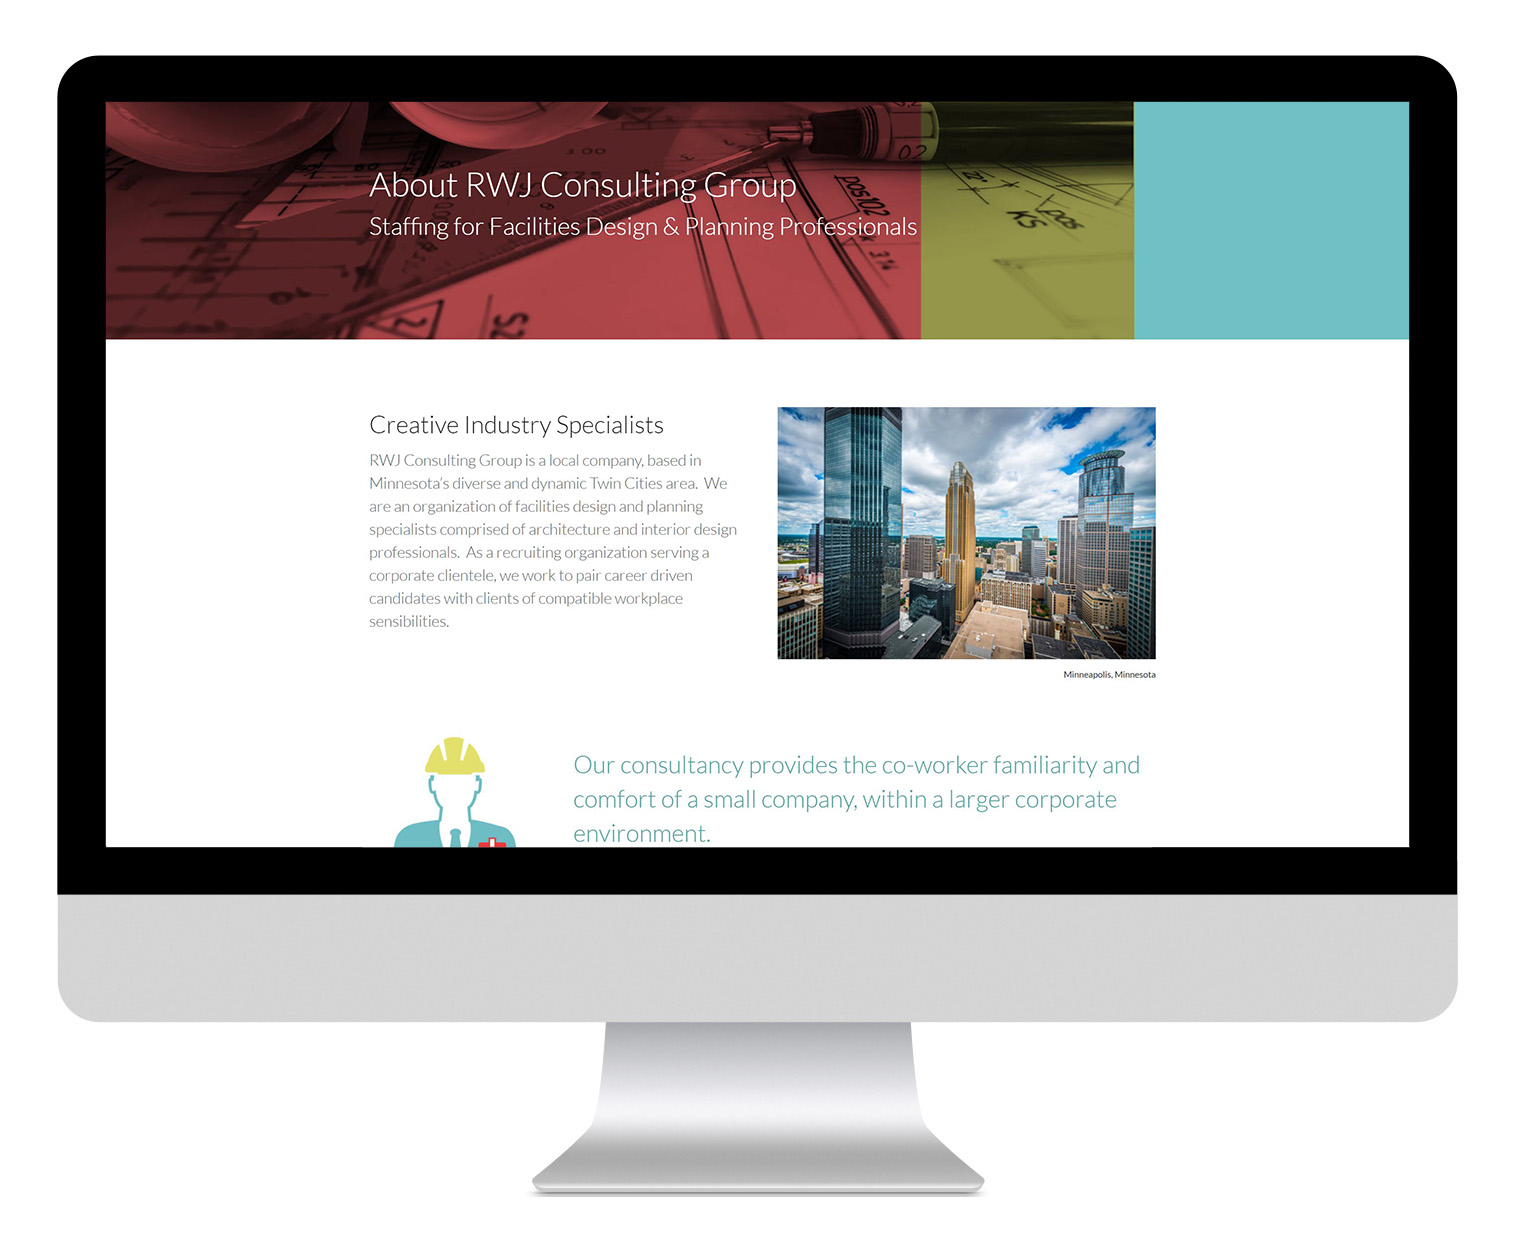 RWJ Consulting Group About Page Design